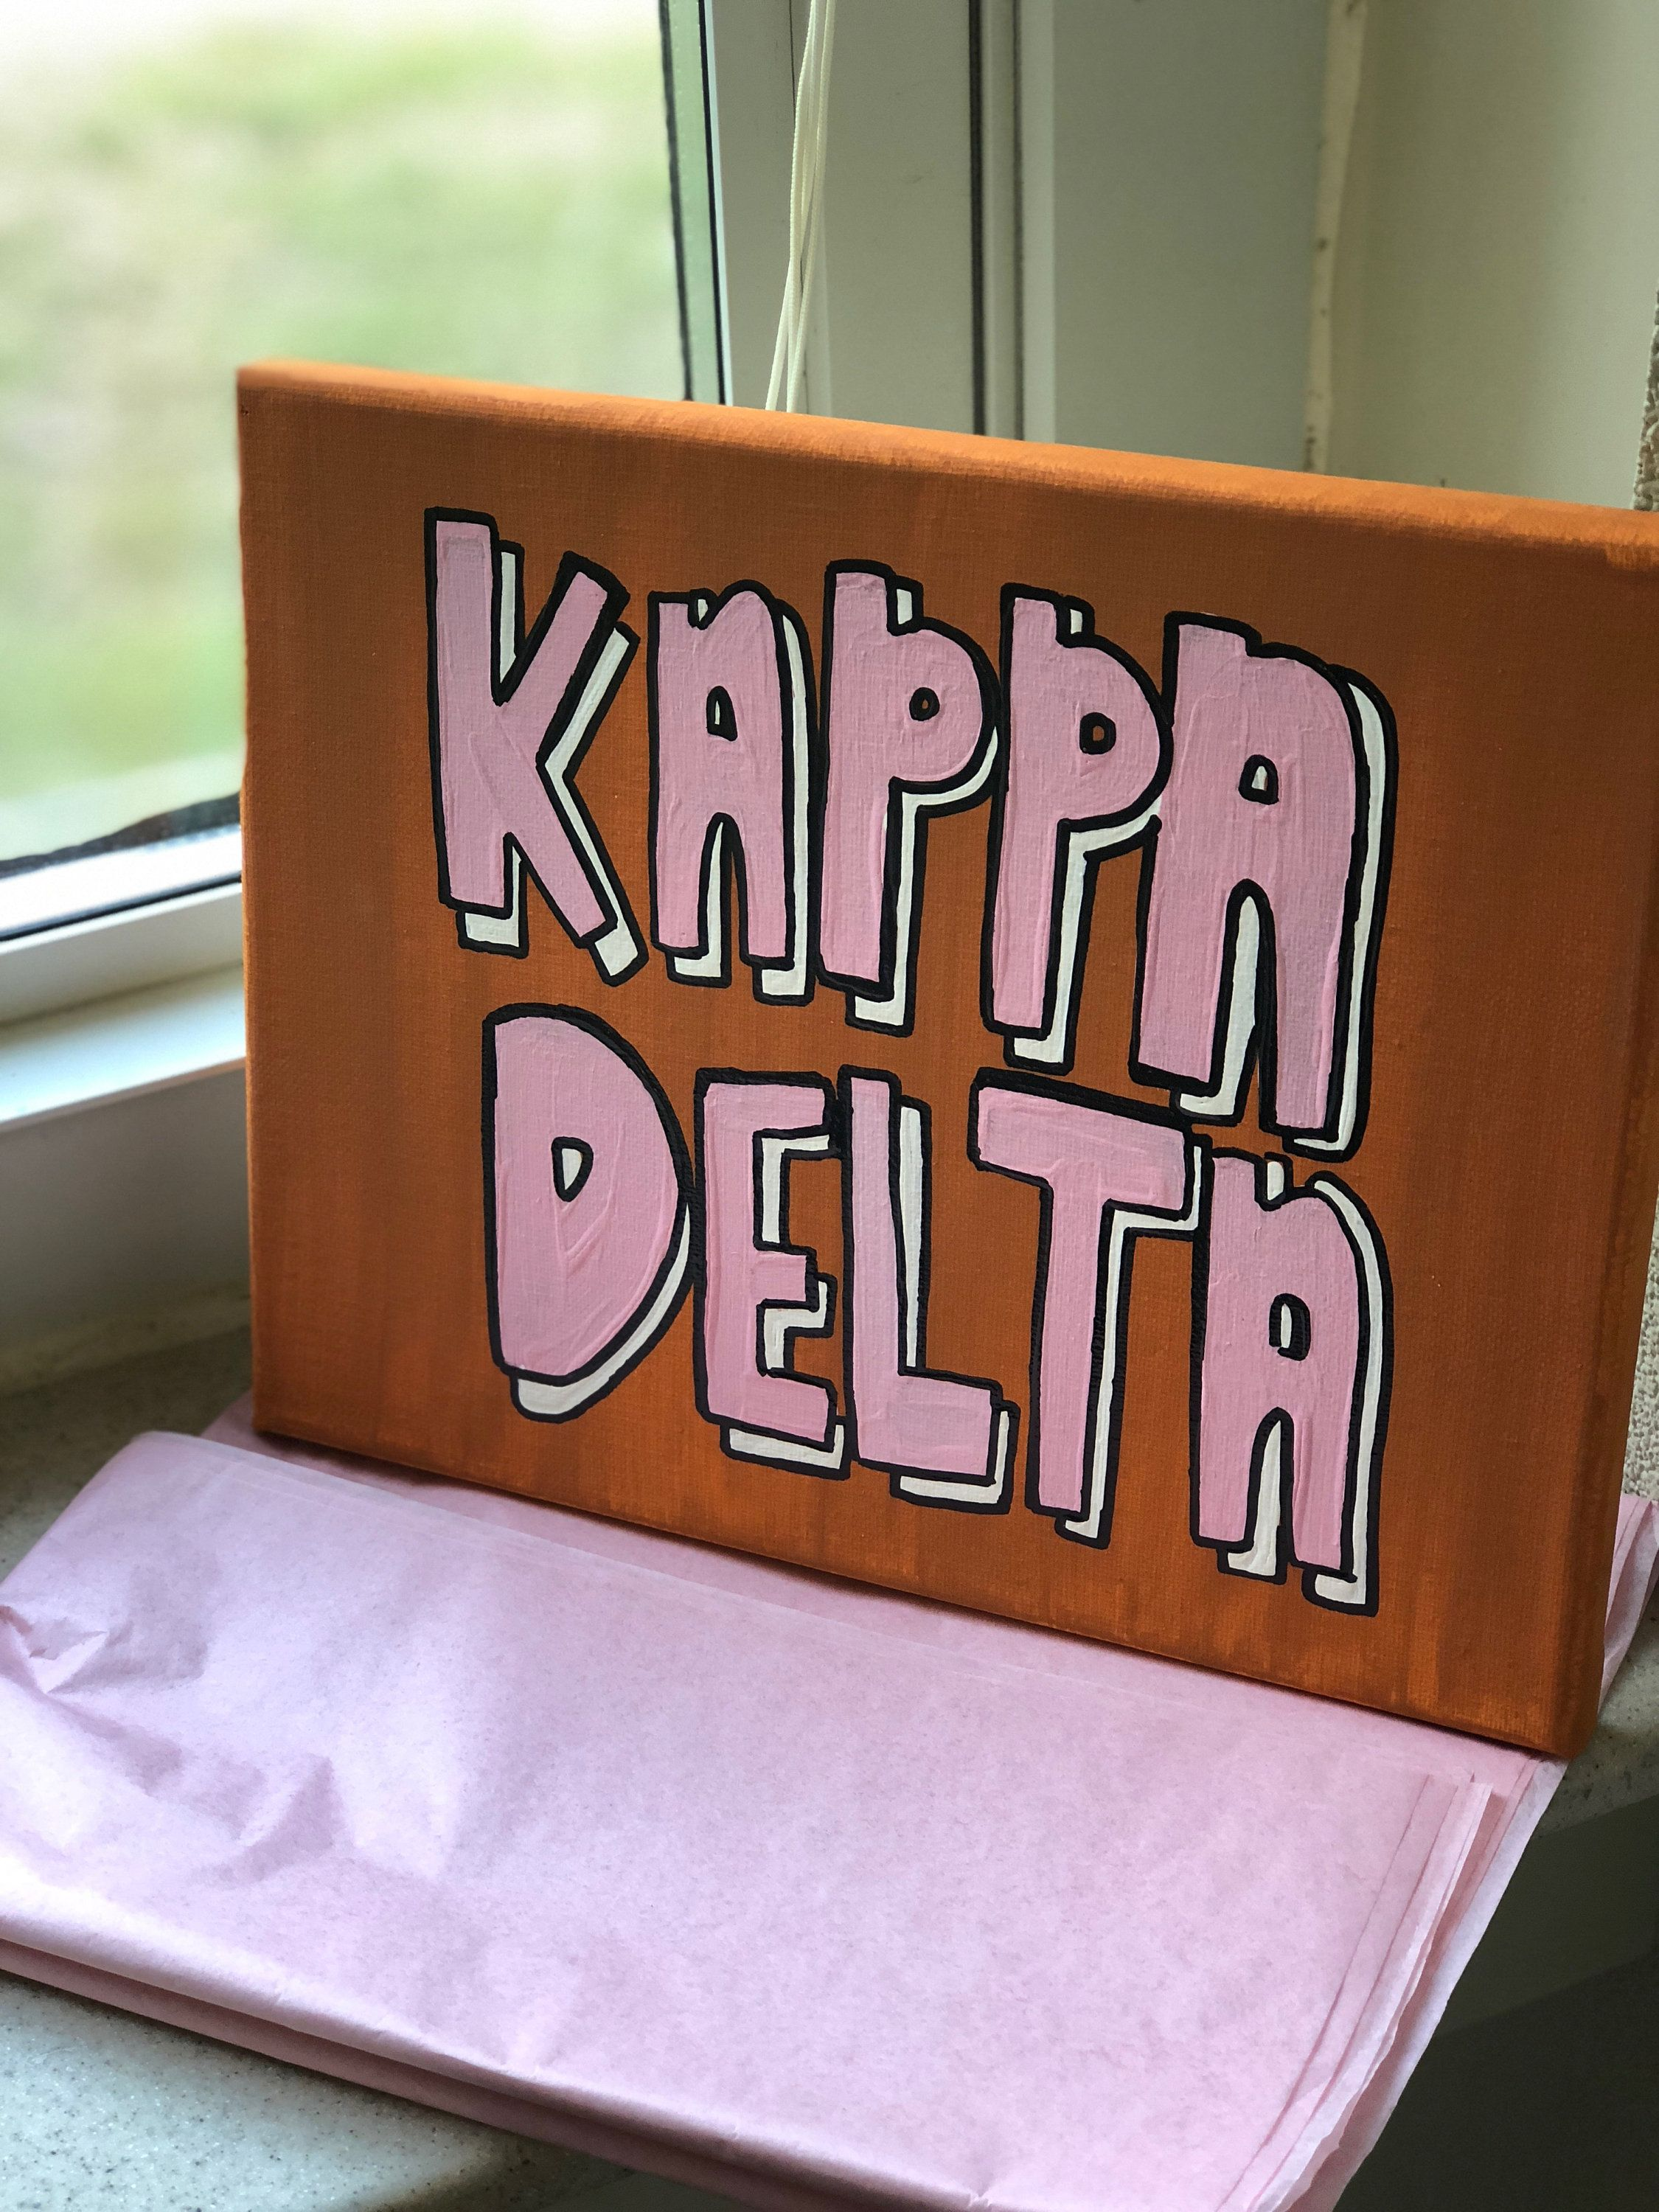 Kappa Delta Sorority Canvas // Burnt Orange and Light Pink // Big Little Gifts // Big Little Canvas // Gifts for Her // Sorority Crafts #biglittlecanvas